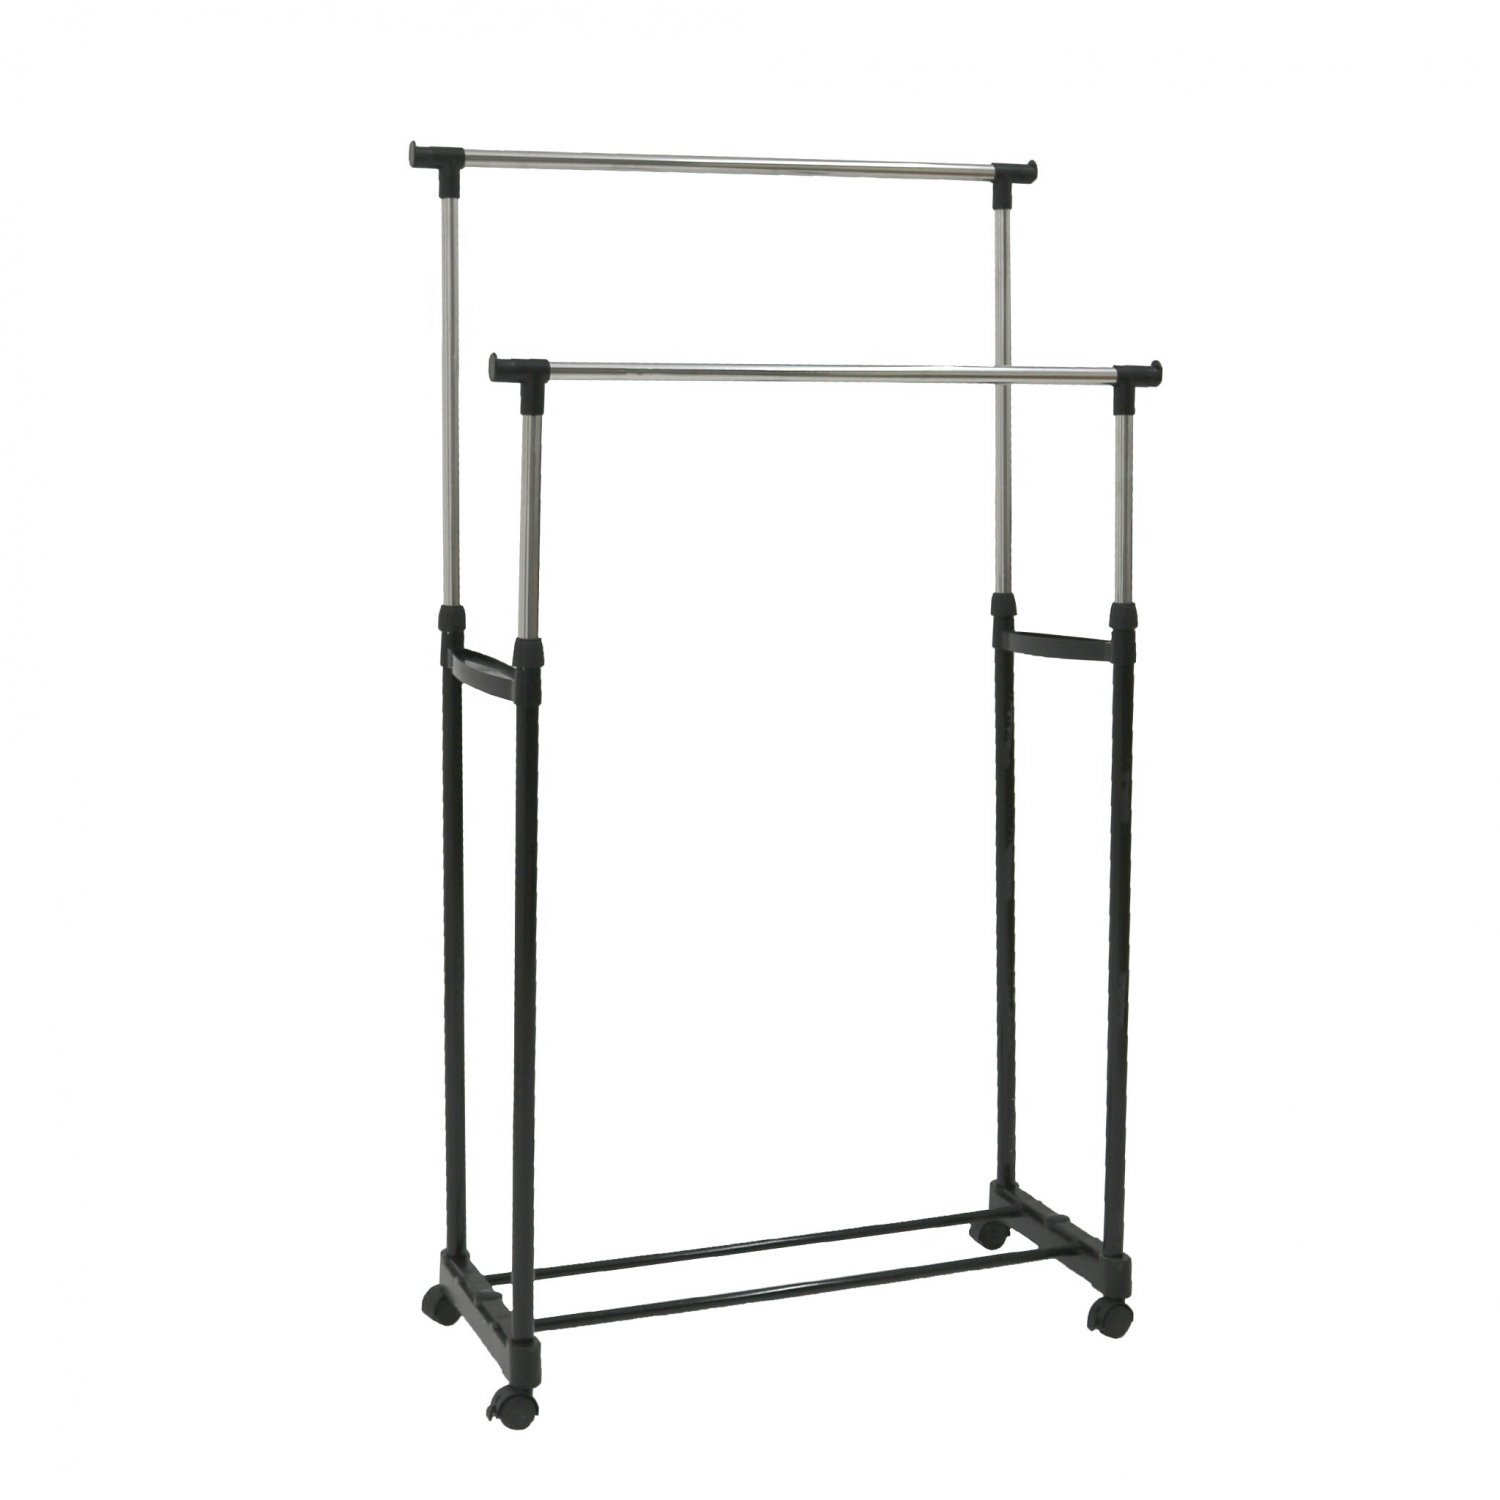 double clothes rail portable hanging garment w shoe rack shelf 3570 who needs shops. Black Bedroom Furniture Sets. Home Design Ideas